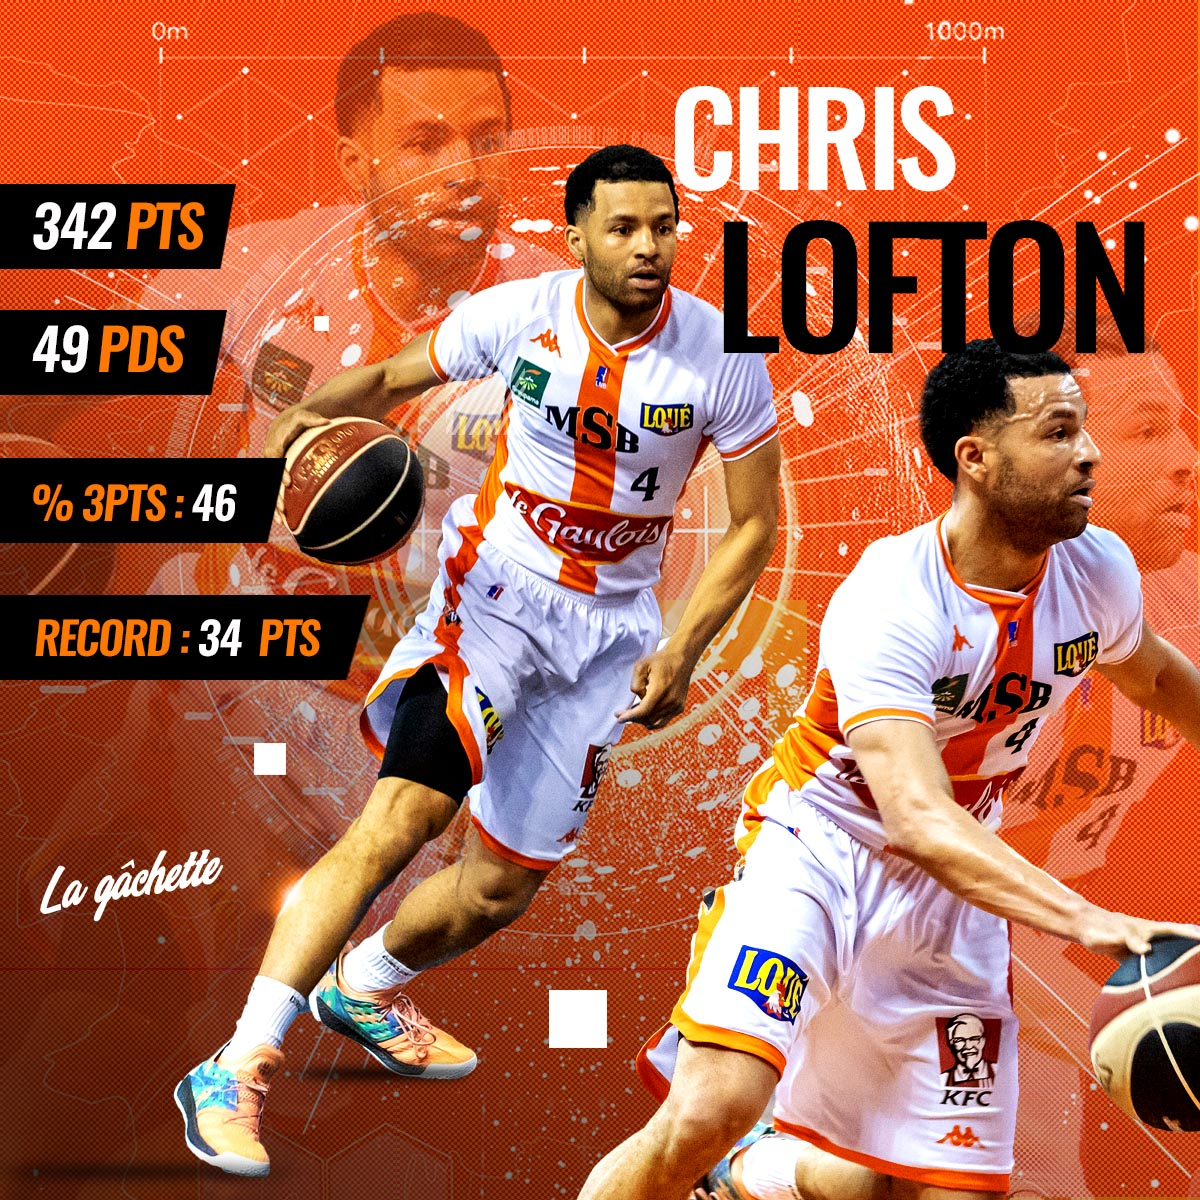 chris lofton